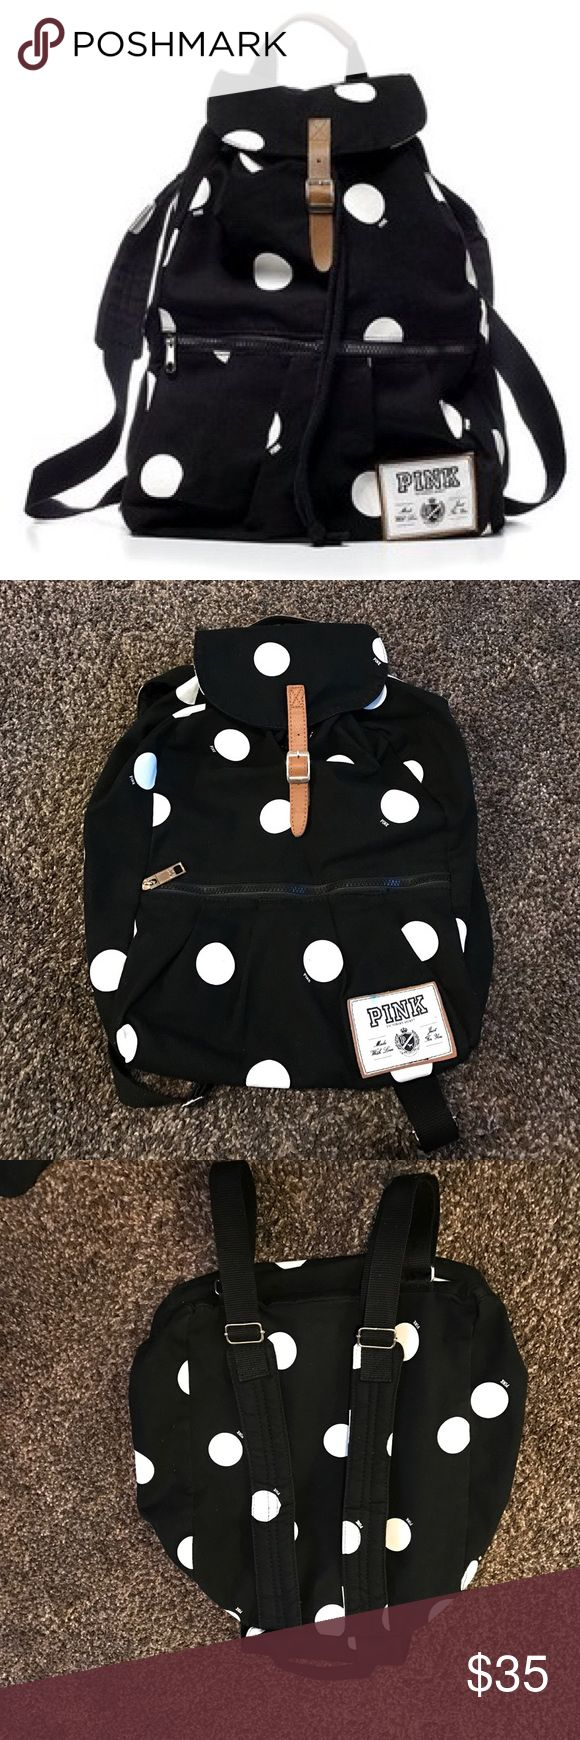 Pink by VS black and white polka dot backpack This backpack is so amazing with an adorable pattern and has only been used a handful of times so it is in great condition! The only flaw this has is a blue pen mark one the PINK label, but this may come out by washing the backpack! PINK Victoria's Secret Bags Backpacks